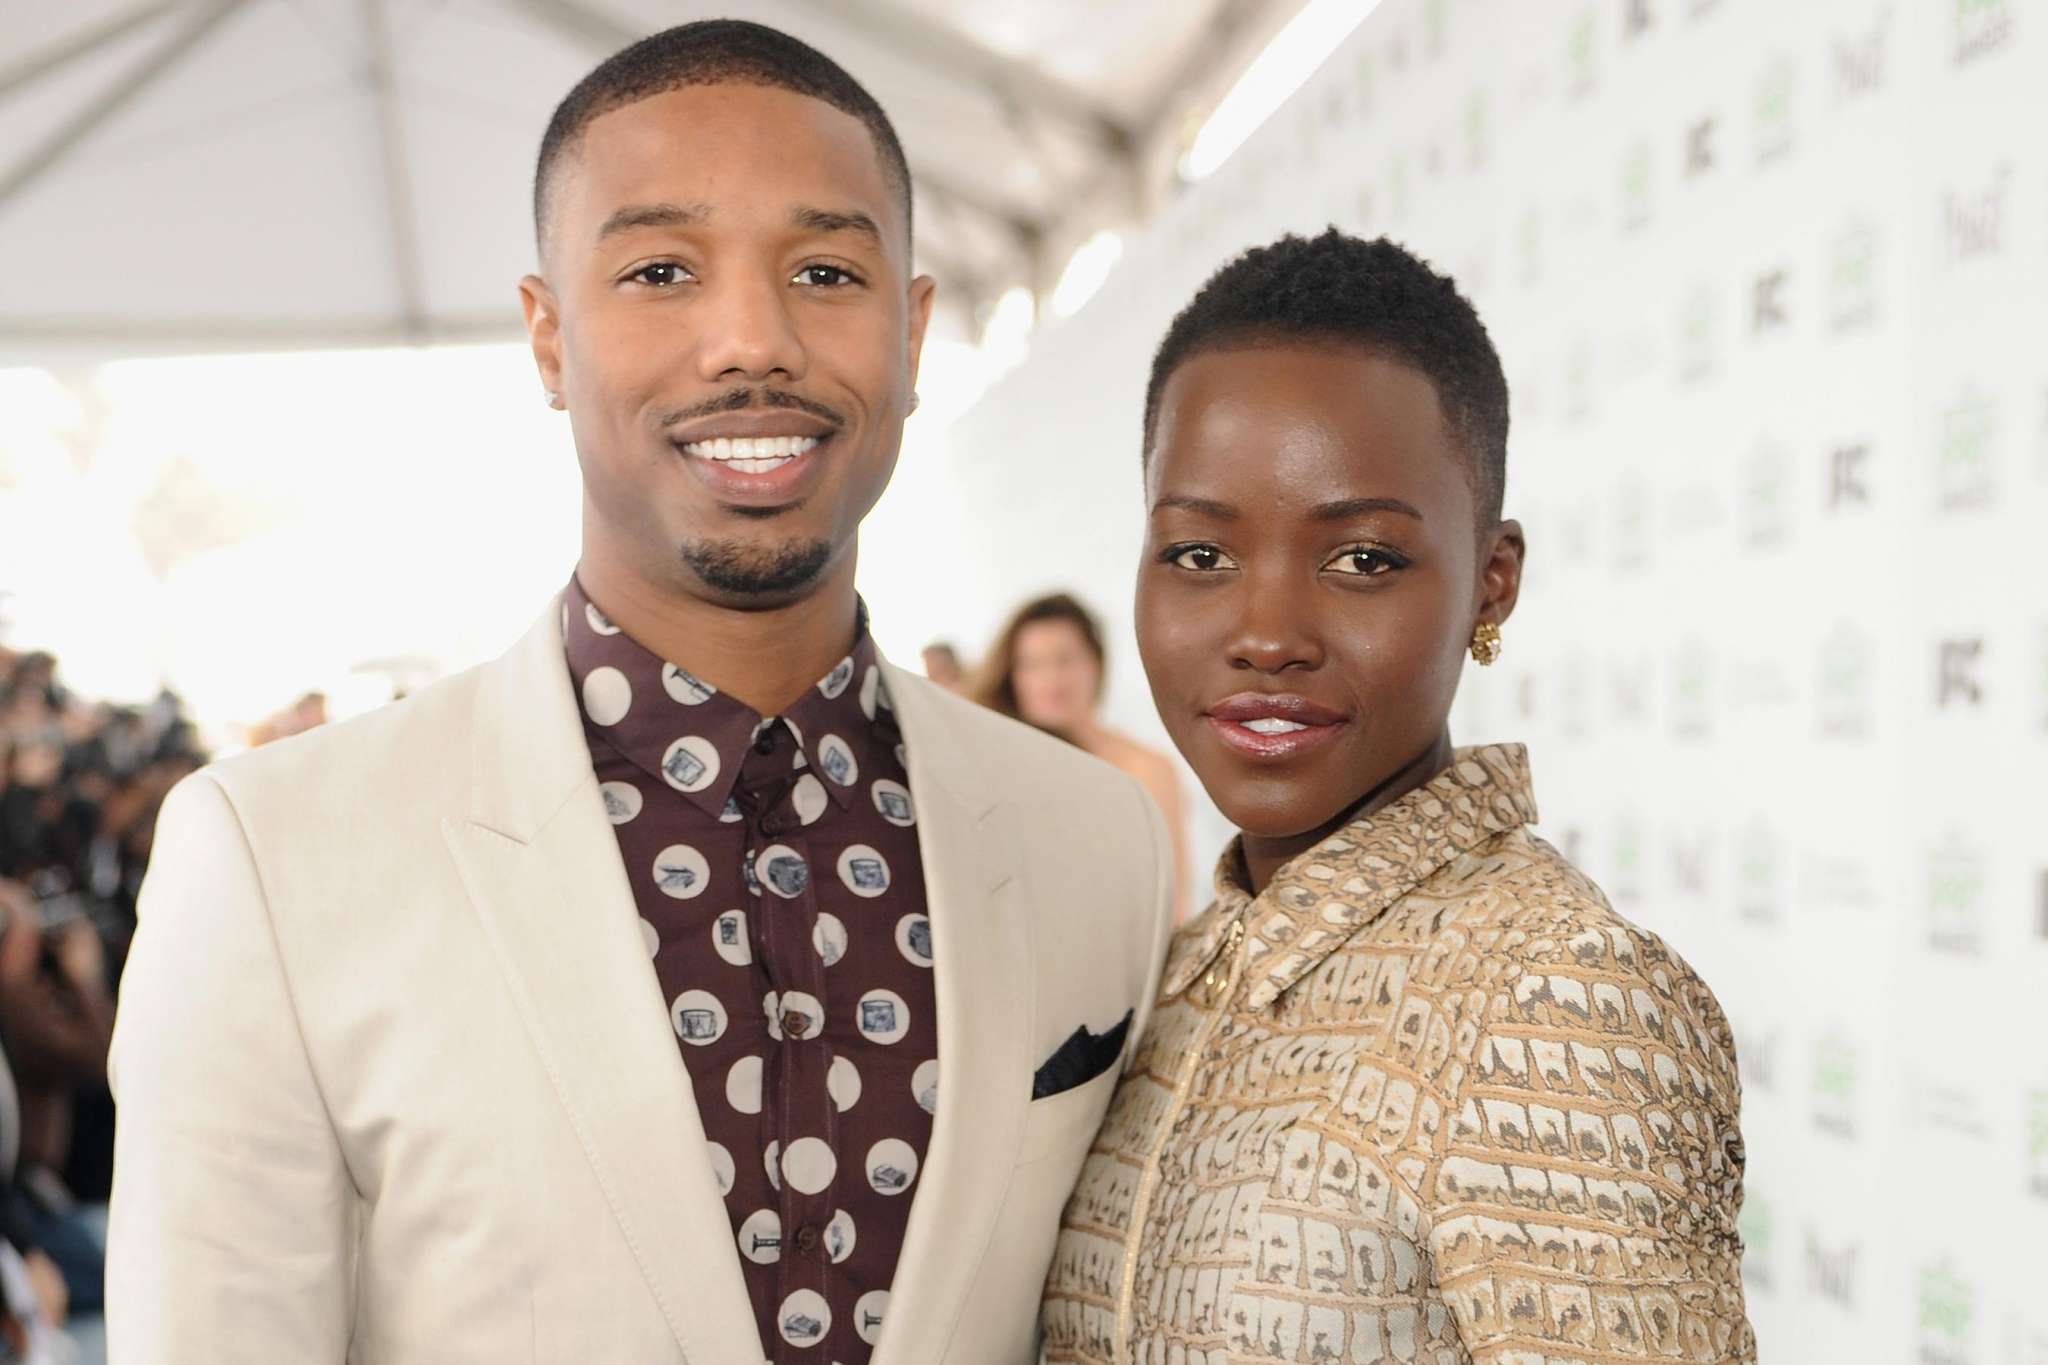 """michael-b-jordan-and-lupita-nyongo-what-are-the-chances-the-black-panther-stars-will-date-amid-flirty-interactions"""